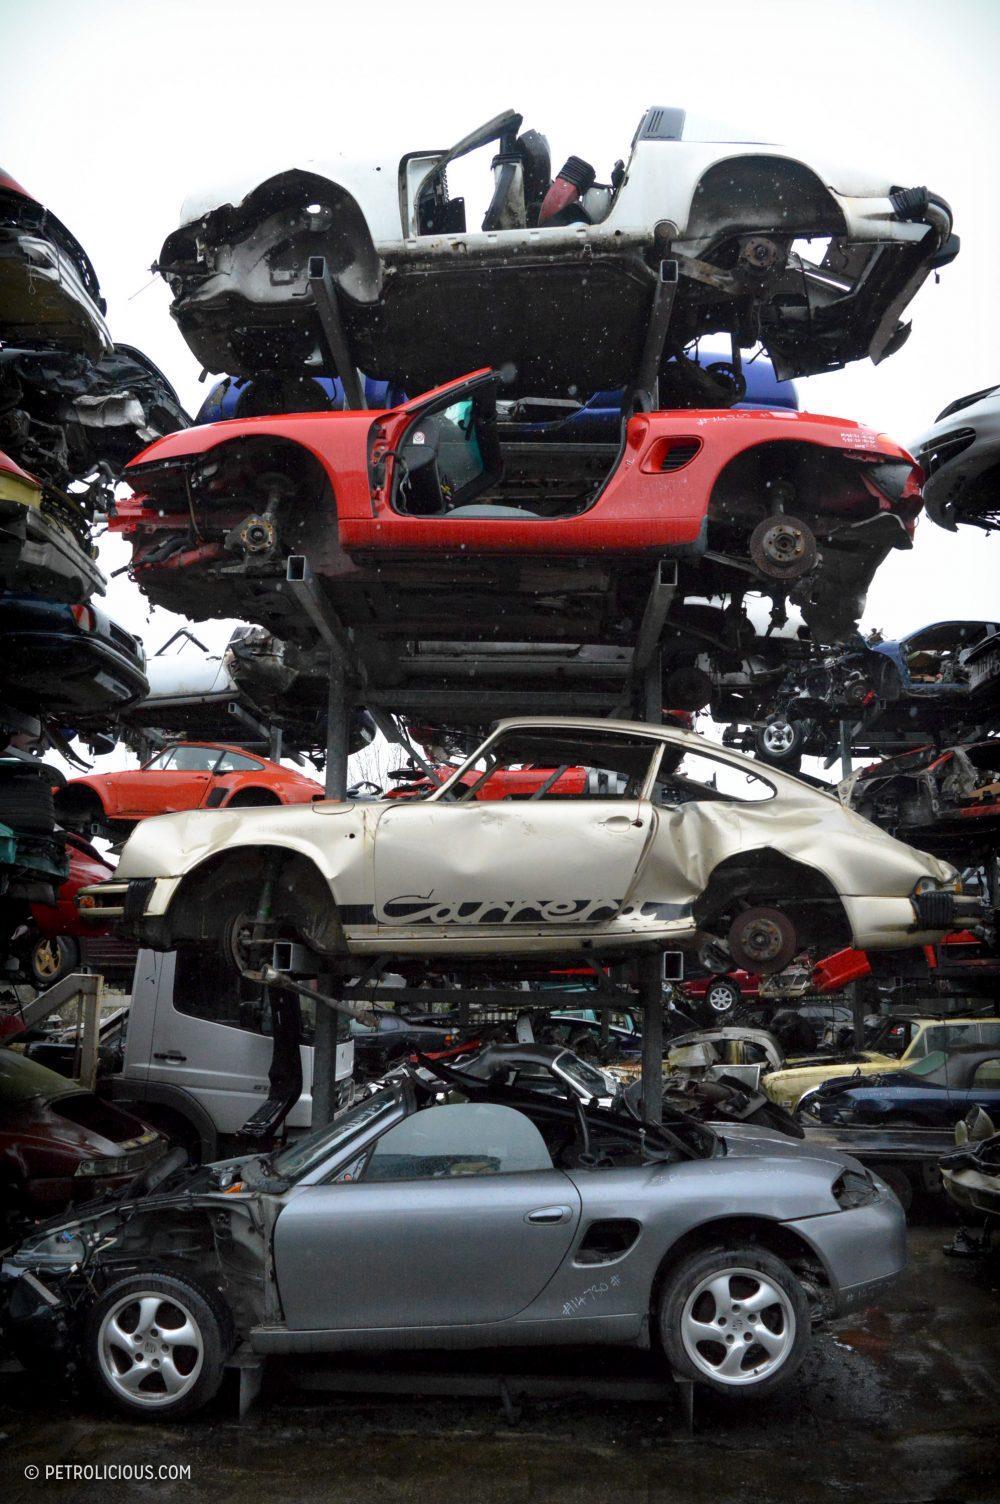 This Sports Car Scrapyard Is Home To Ferrari Testarossas, Not ...